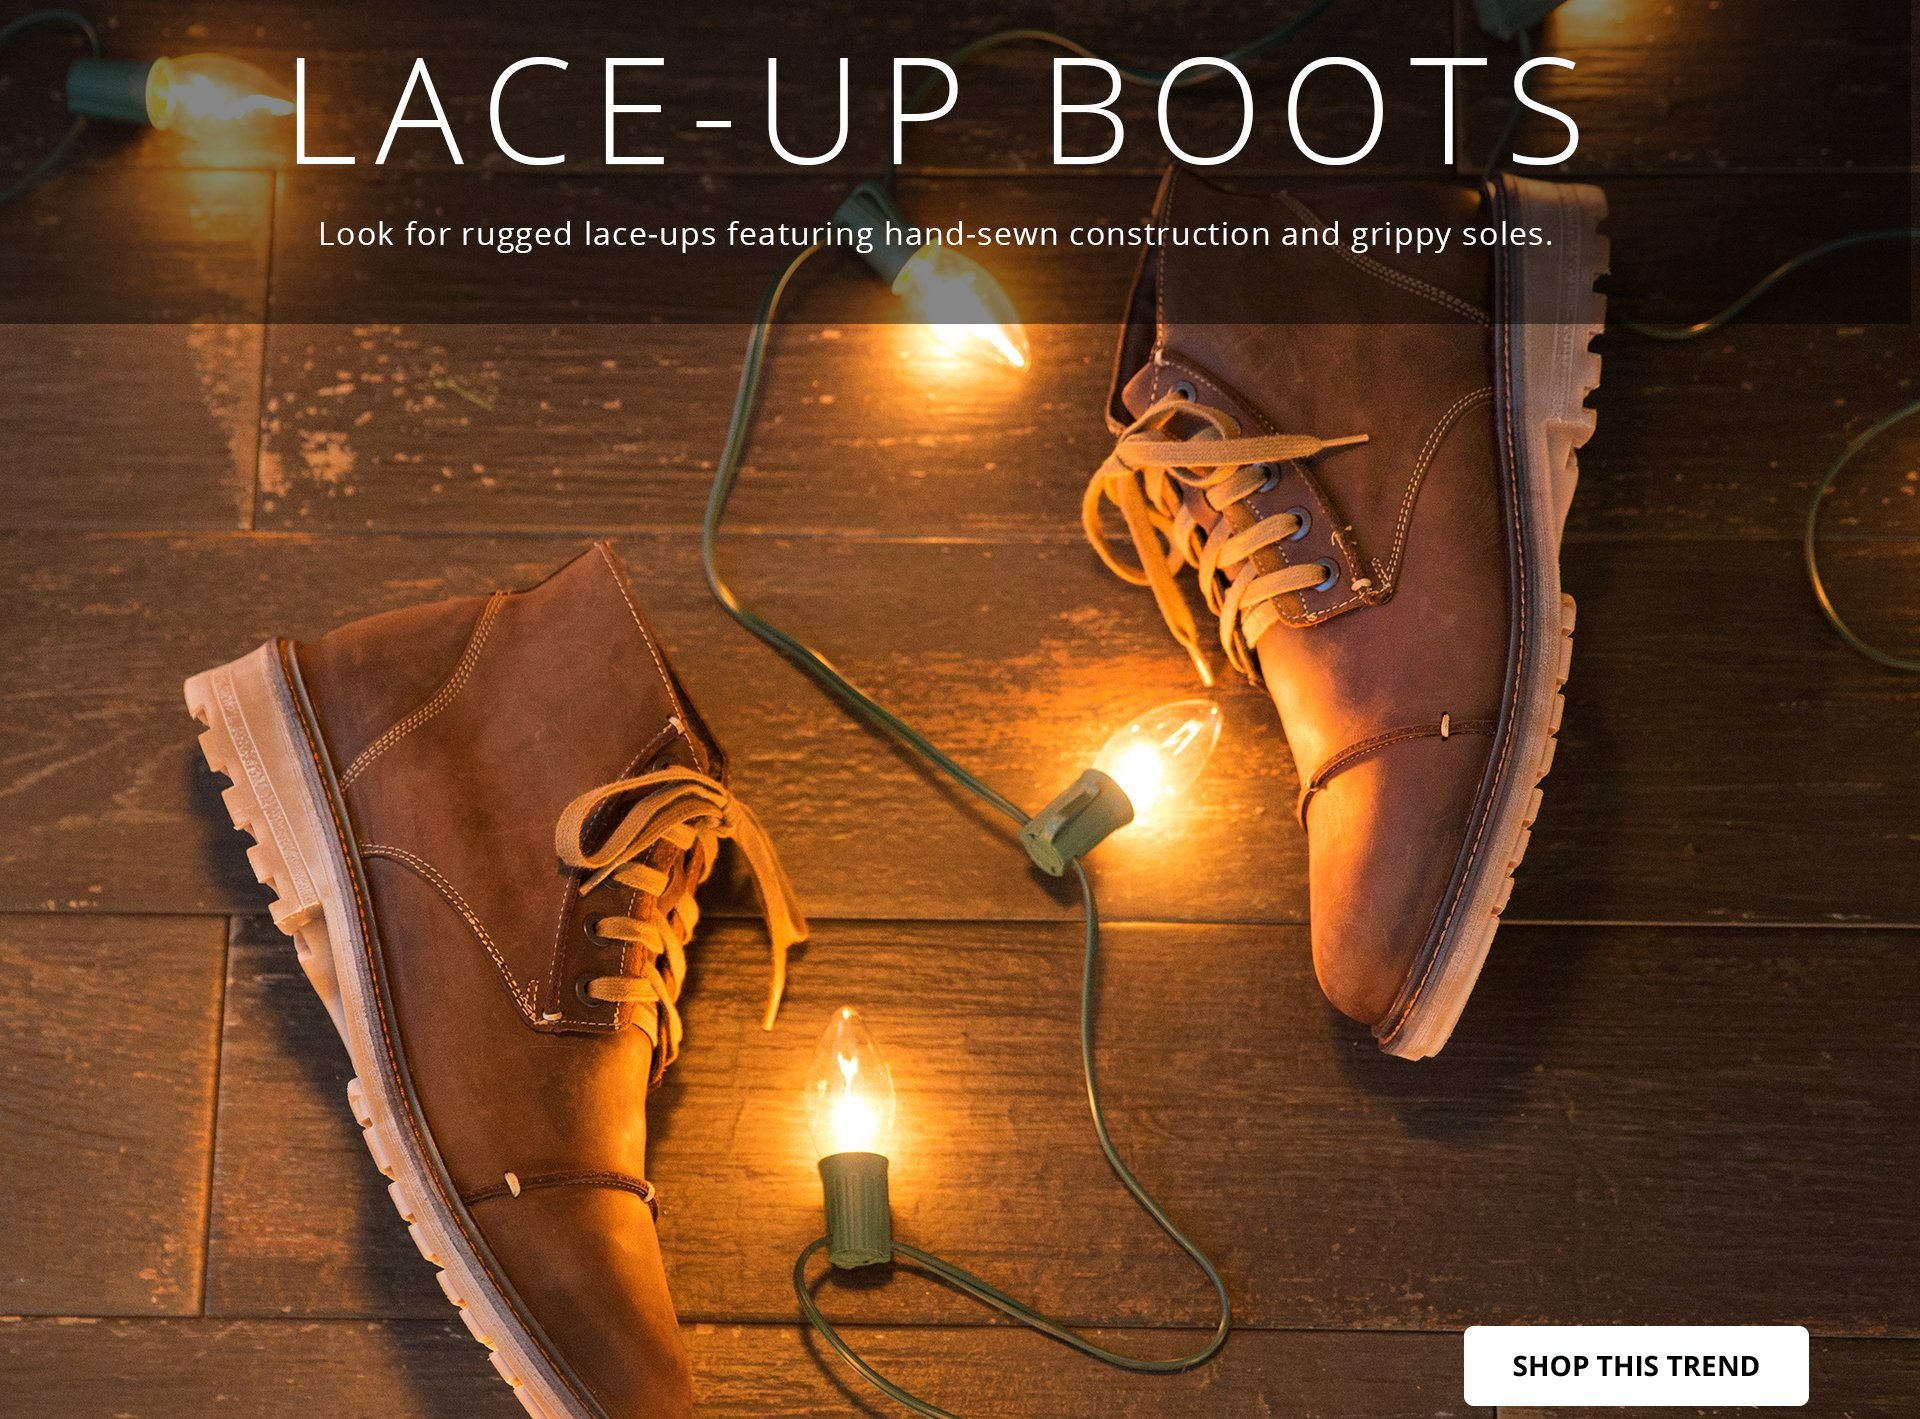 LACE-UP BOOTS: Look for rugged lace-ups featuring hand-sewn construction and grippy soles. SHOP THIS TREND